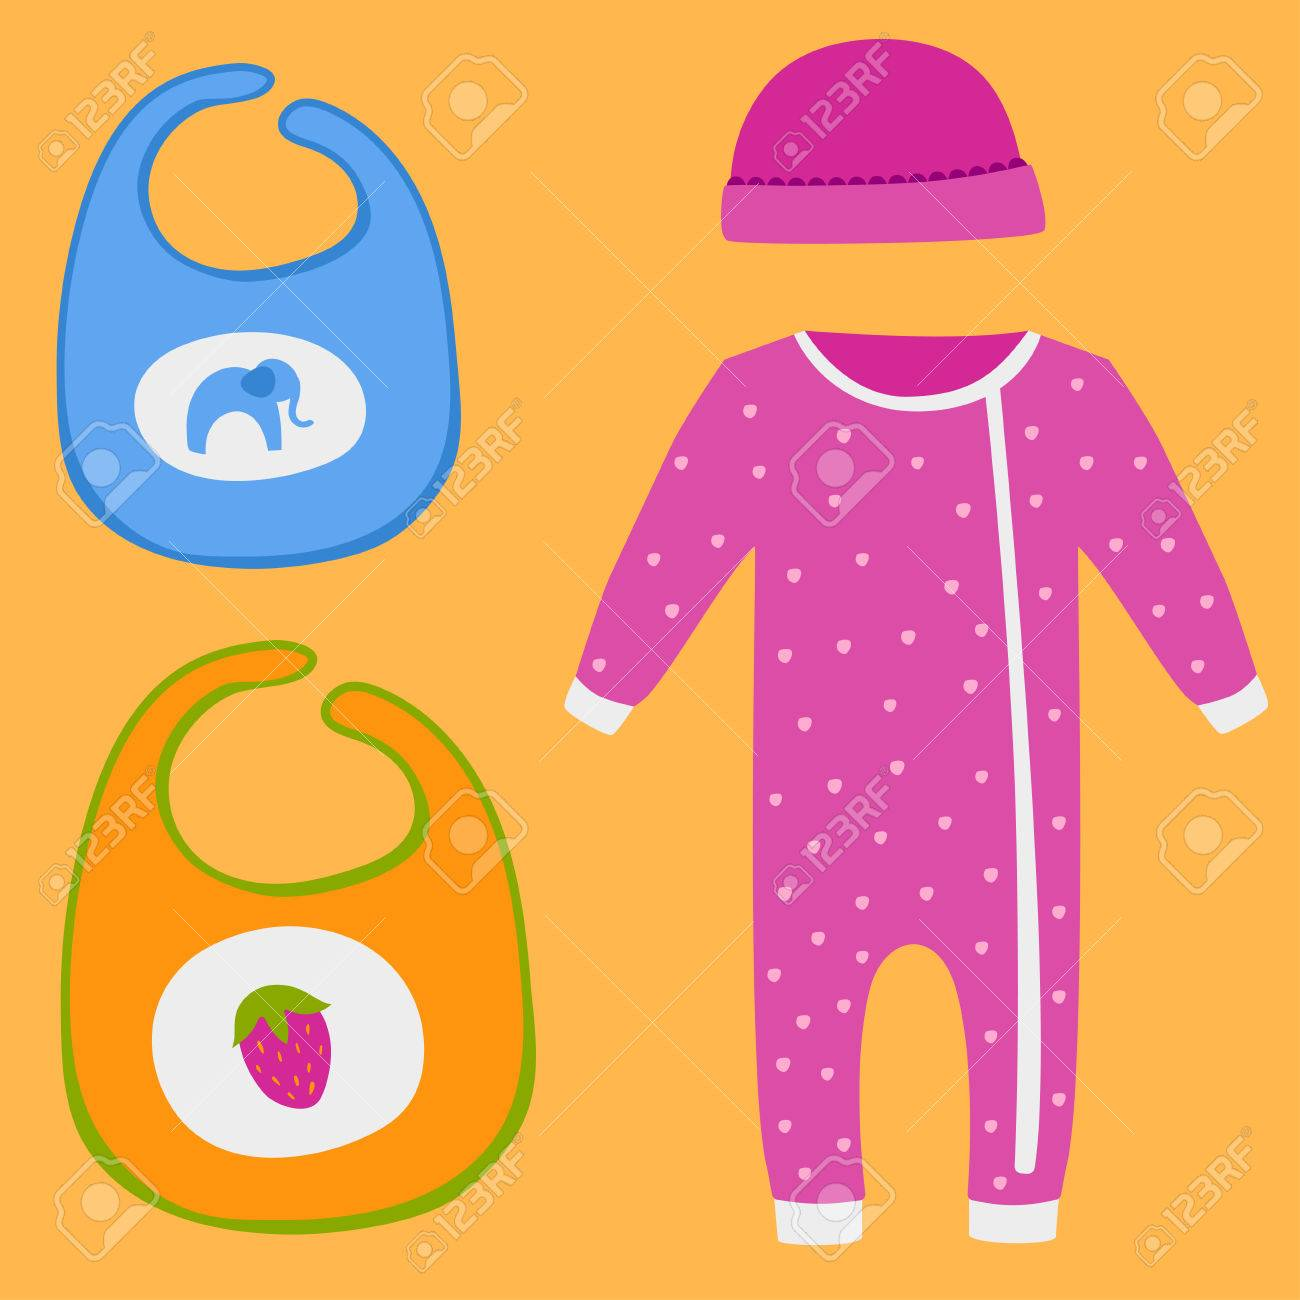 a8b6b743a Vector - Vector baby clothes icon set design textile casual fabric colorful  dress child garment wear illustration.